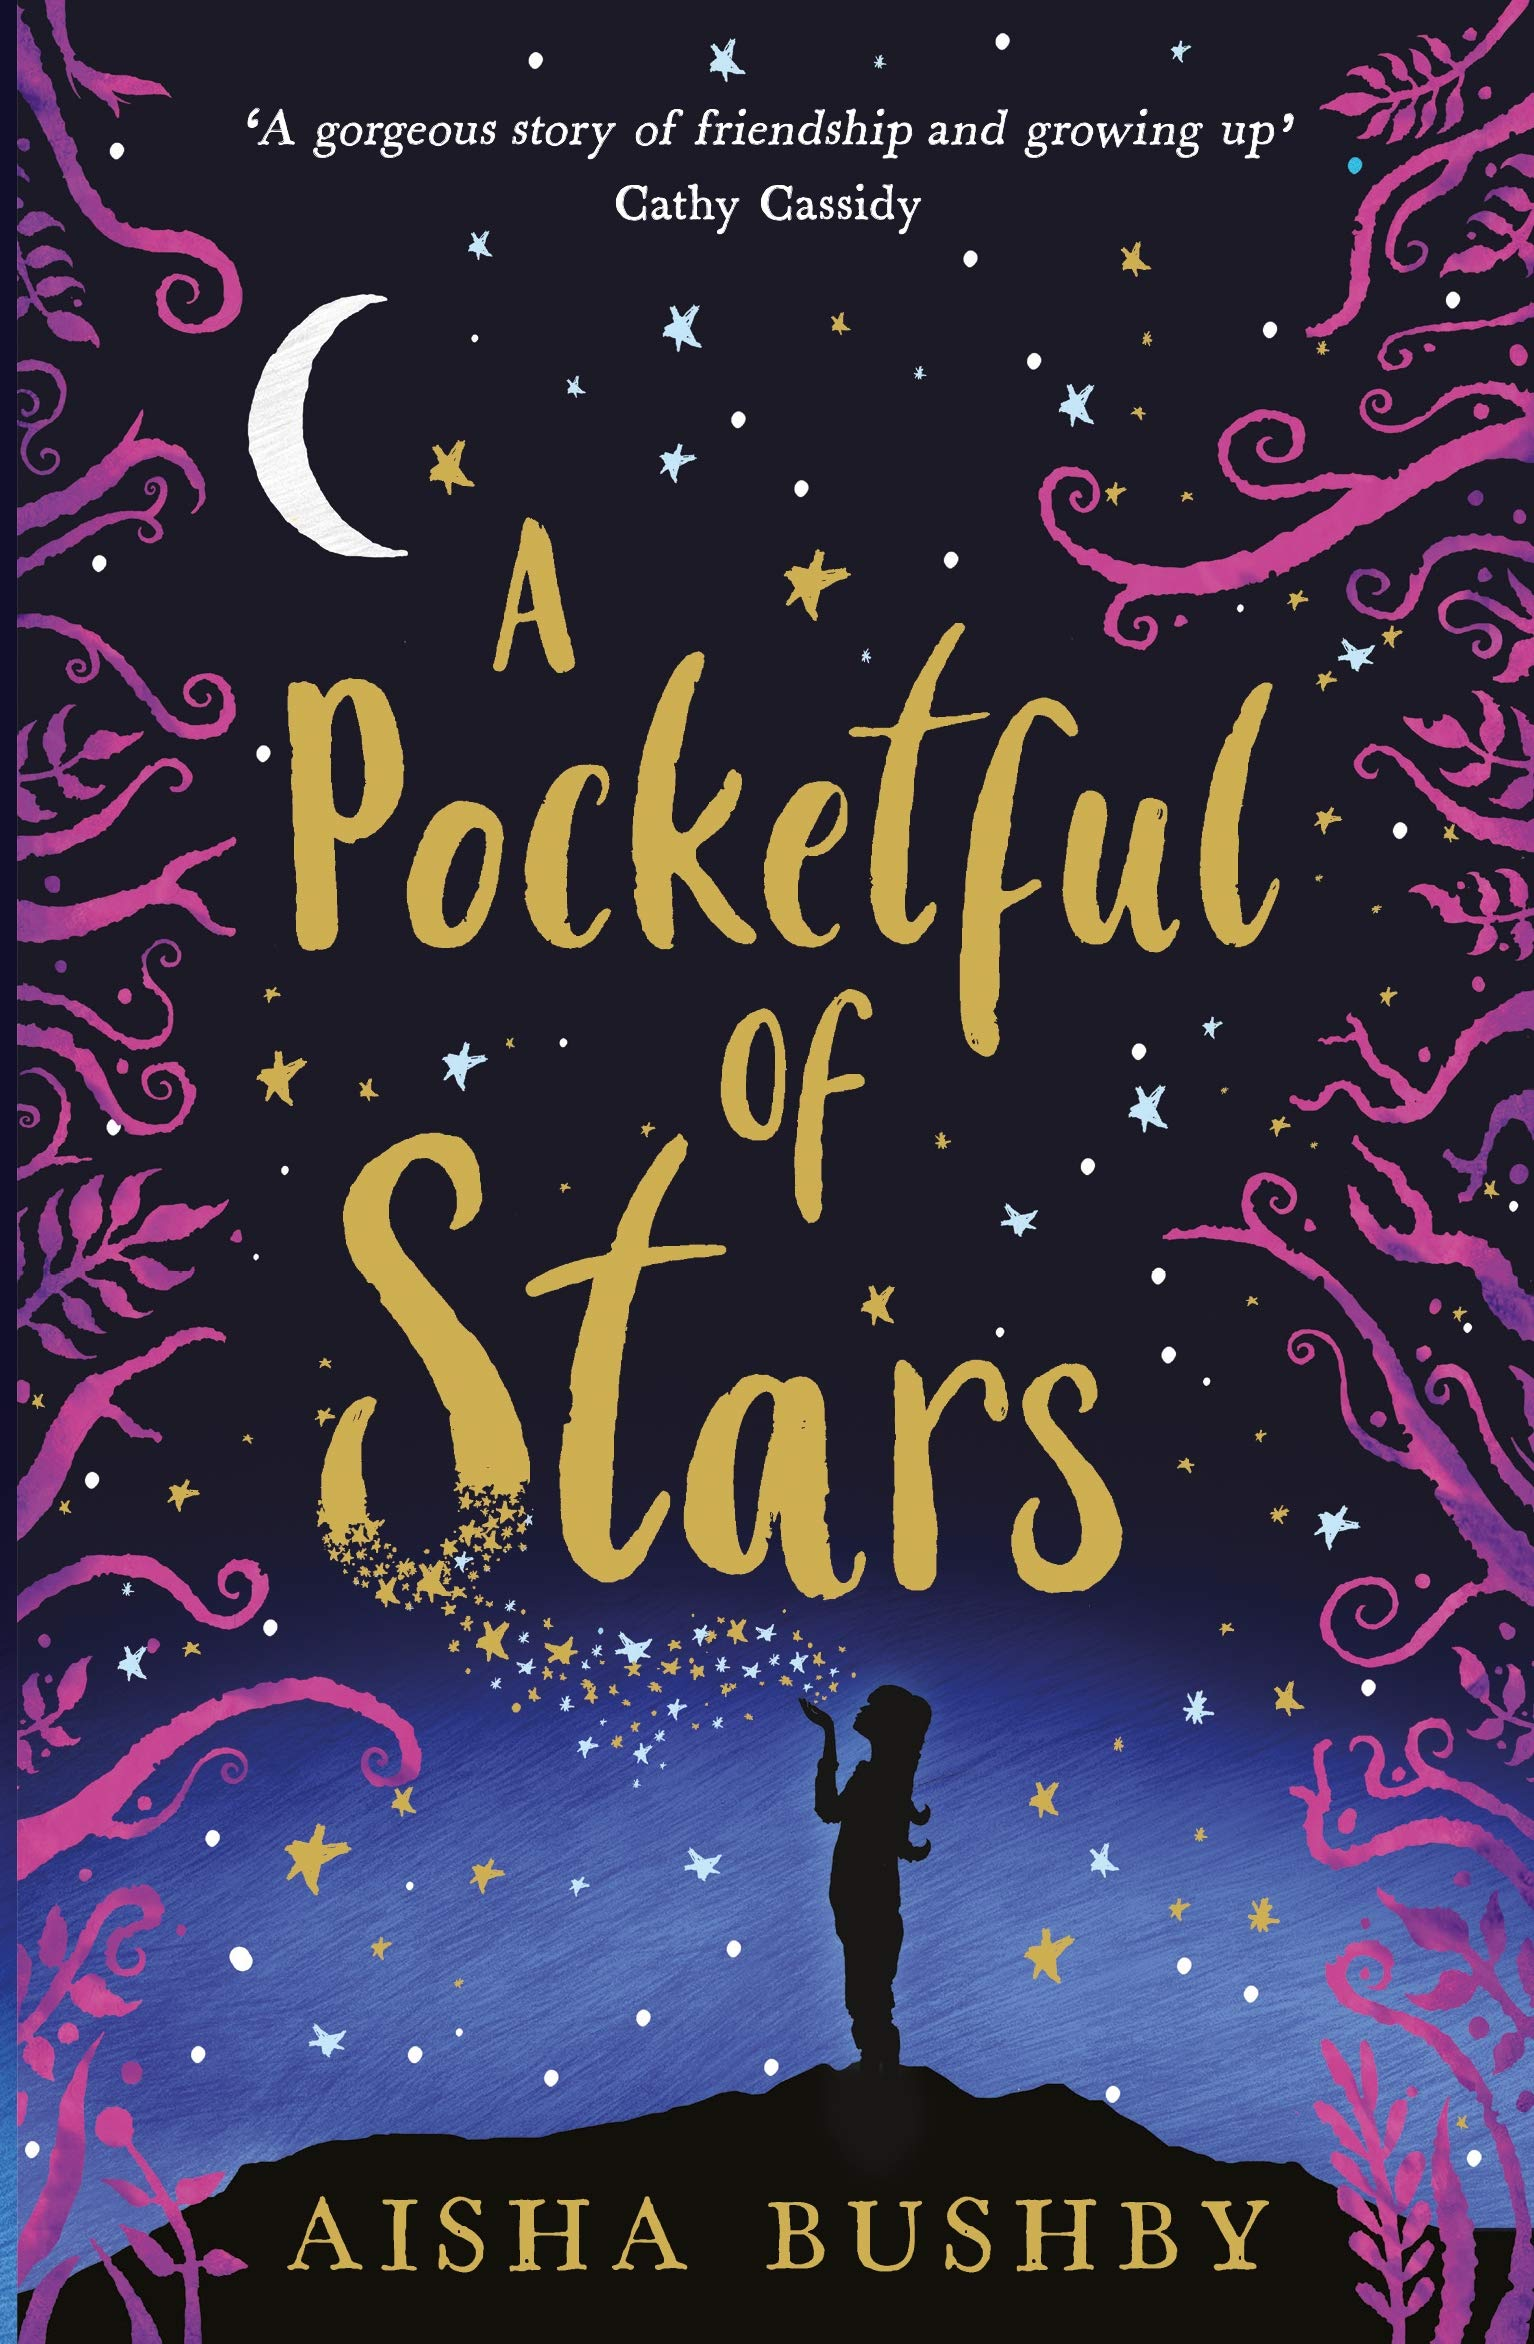 Buy A Pocketful of Stars Book Online at Low Prices in India | A ...